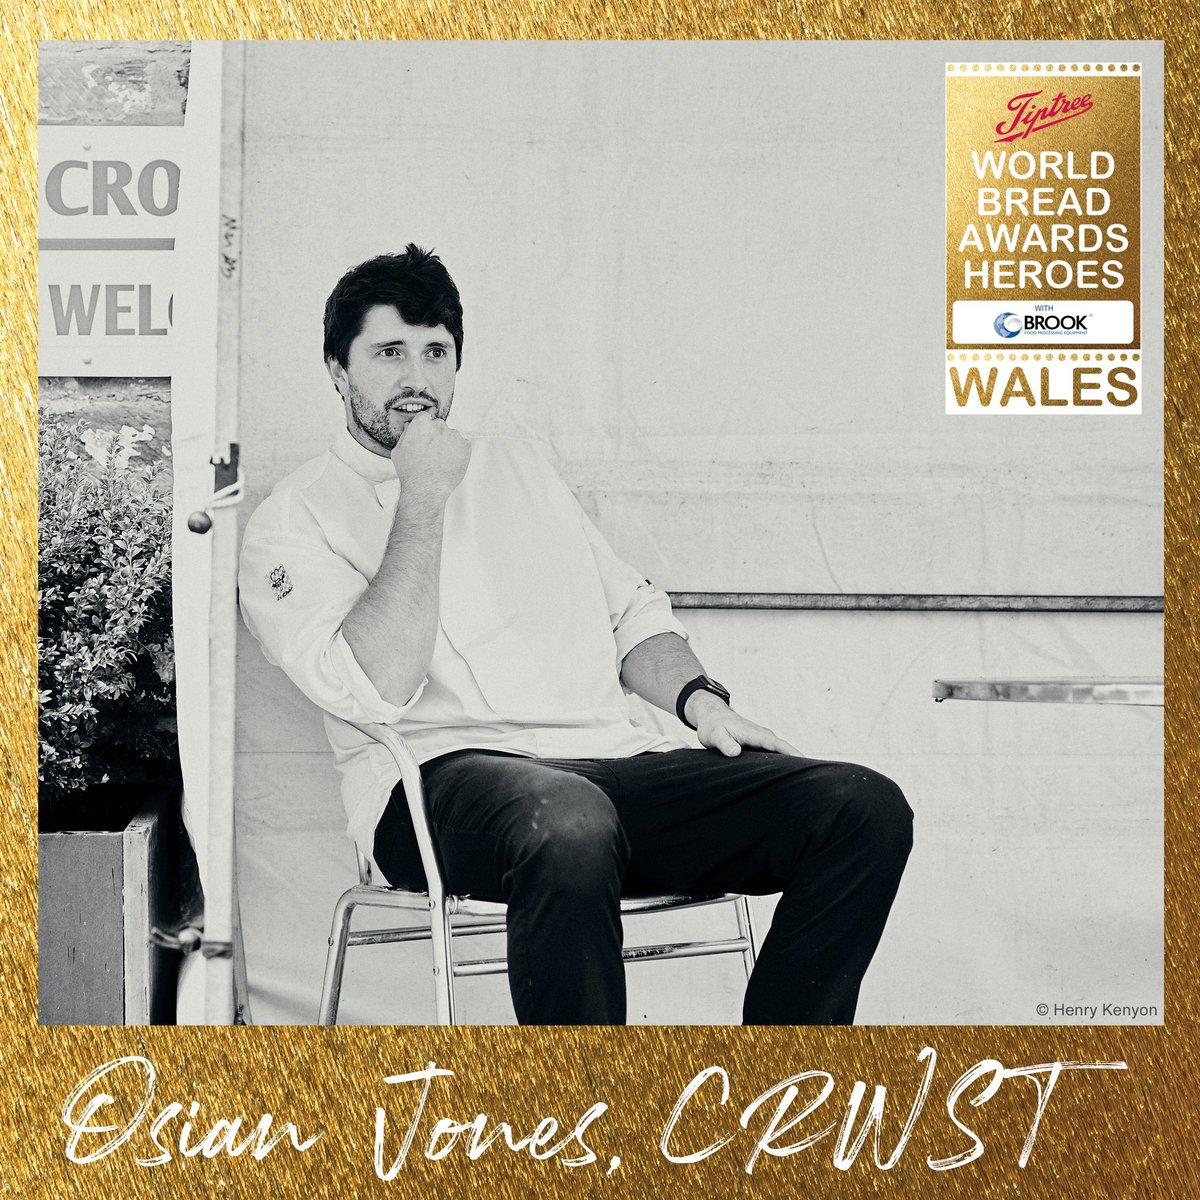 Watch @crwstcymru on @HenoS4C @S4C now 🍞🥖 For those of you who can't speak #Welsh, you can enjoy with #English #subtitles 👀 #BreadHeroes20 #BreadAwardsUK #Bread #Awards #COVID19